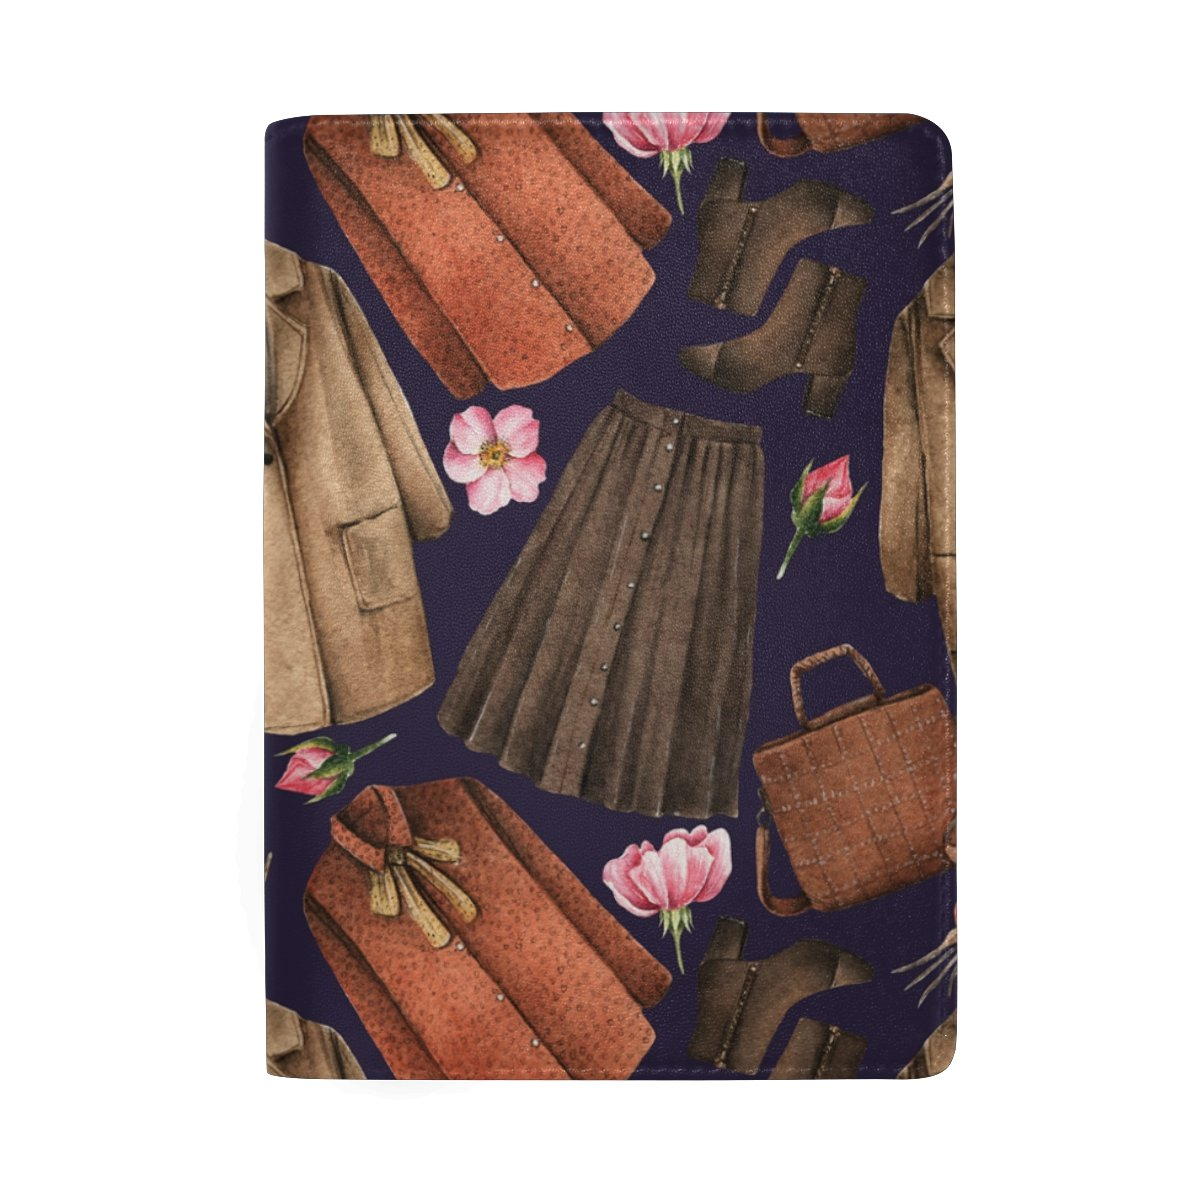 Watercolor Coat Skirt Leather Passport Holder Cover Travel Card Carrier Case